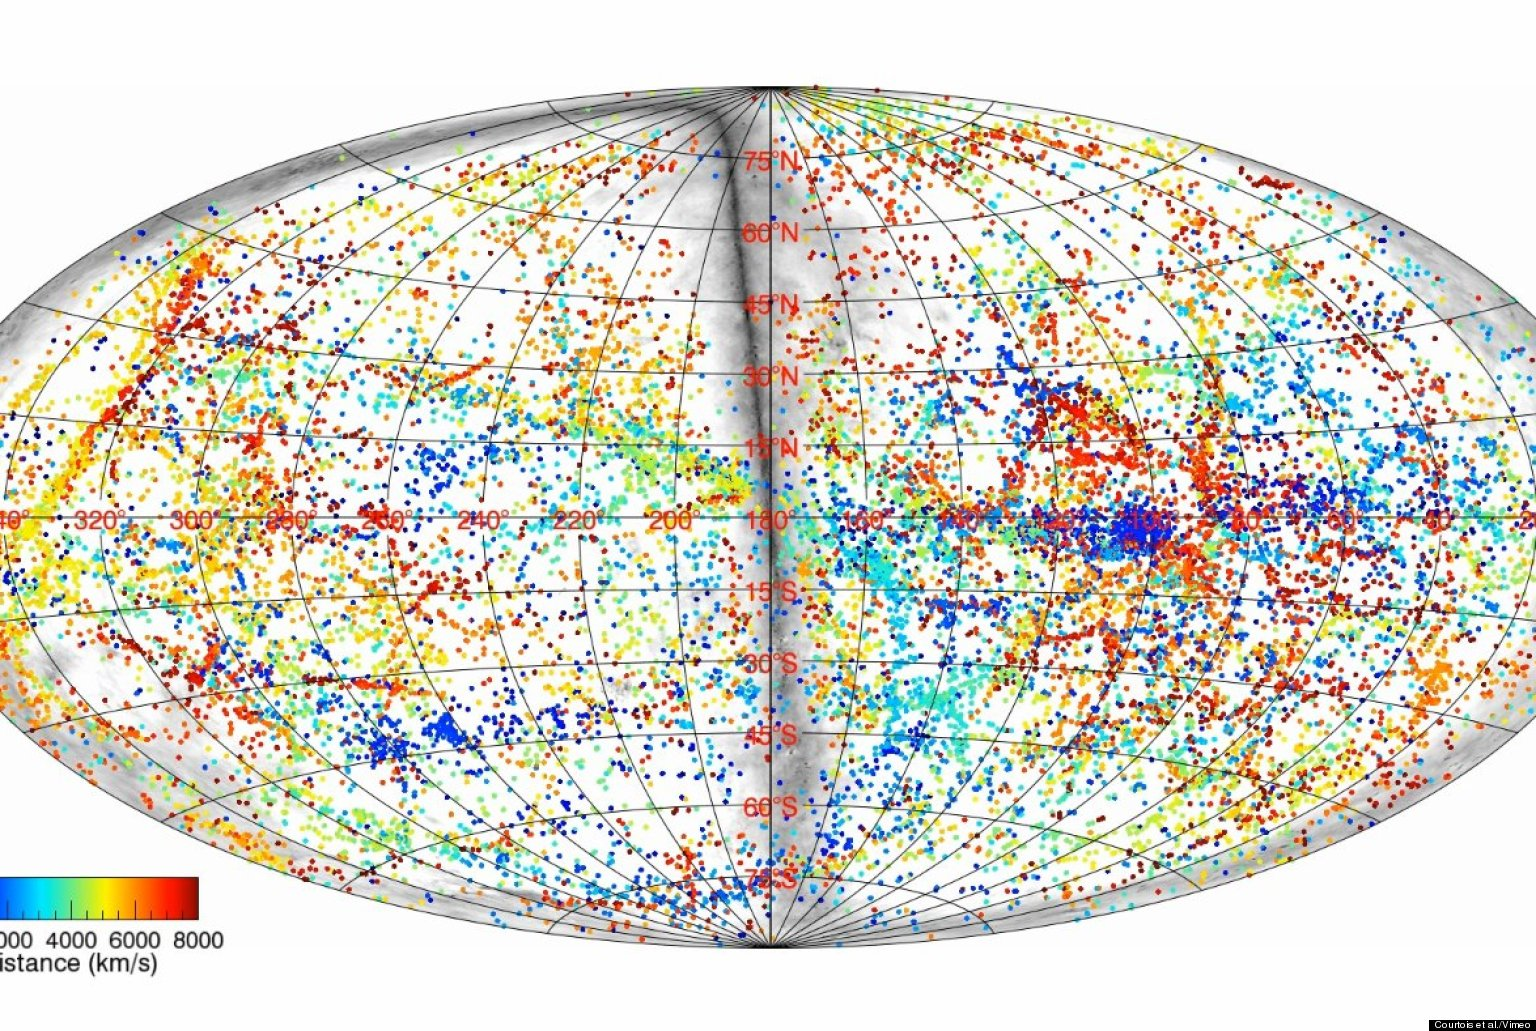 d map of universe shows positions of known galaxies in unprecedenteddetail (video)  huffpost. d map of universe shows positions of known galaxies in